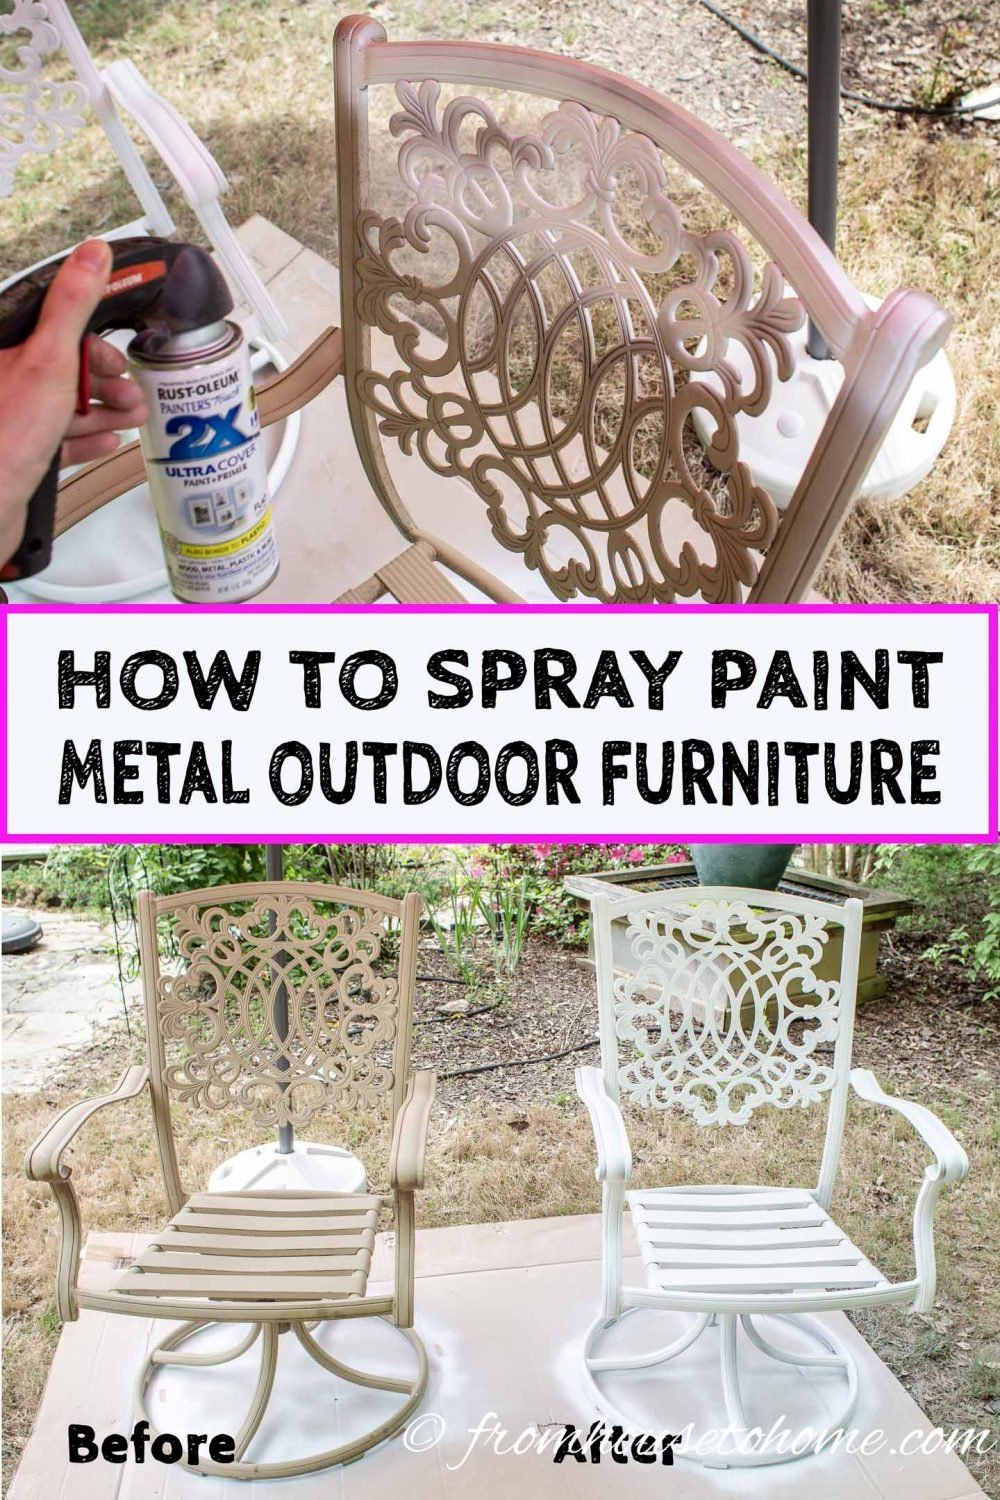 How To Paint Metal Patio Furniture In 2020 Painting Metal Outdoor Furniture Metallic Painted Furniture Painted Outdoor Furniture